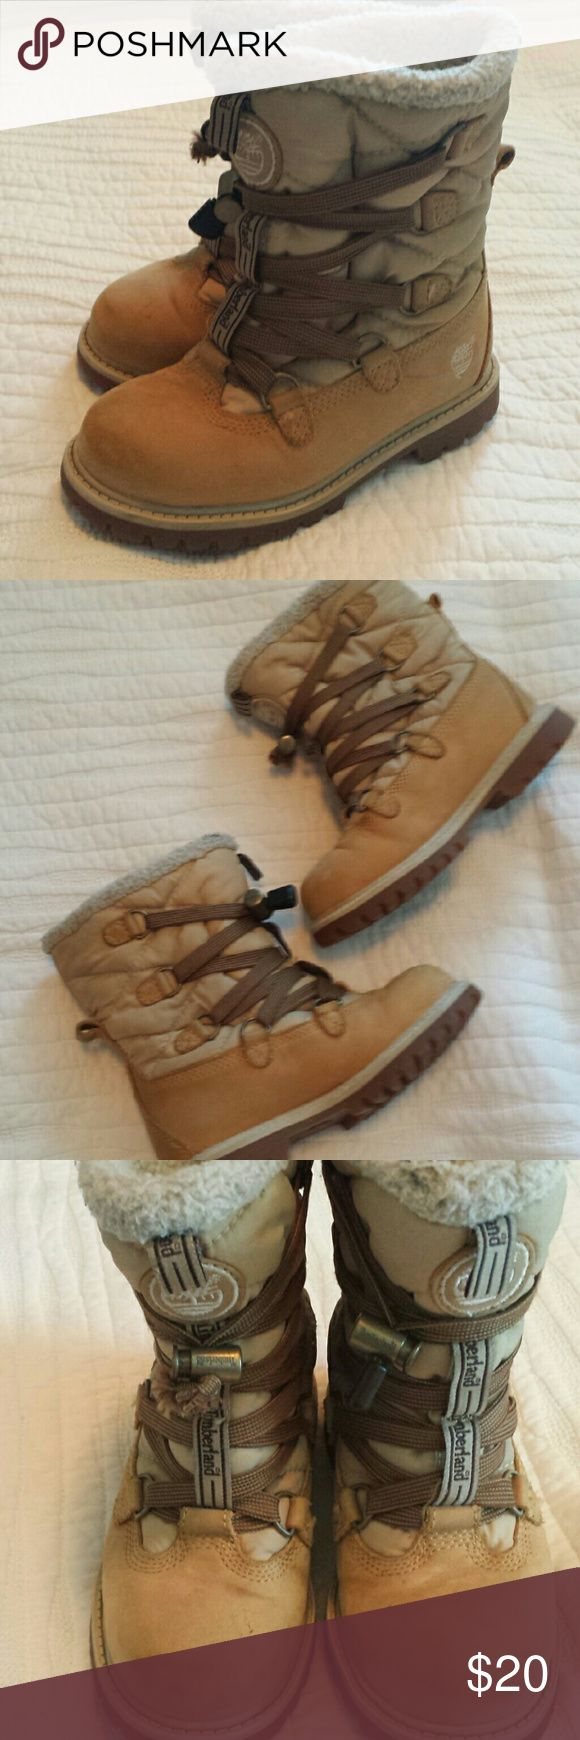 Boys Timberland Boots Good used condition winter boots for little boys. There are a few scuffs and the interior lining does have some staining/piling but it isn't noticeable when the child has them on. Timberland Shoes Boots